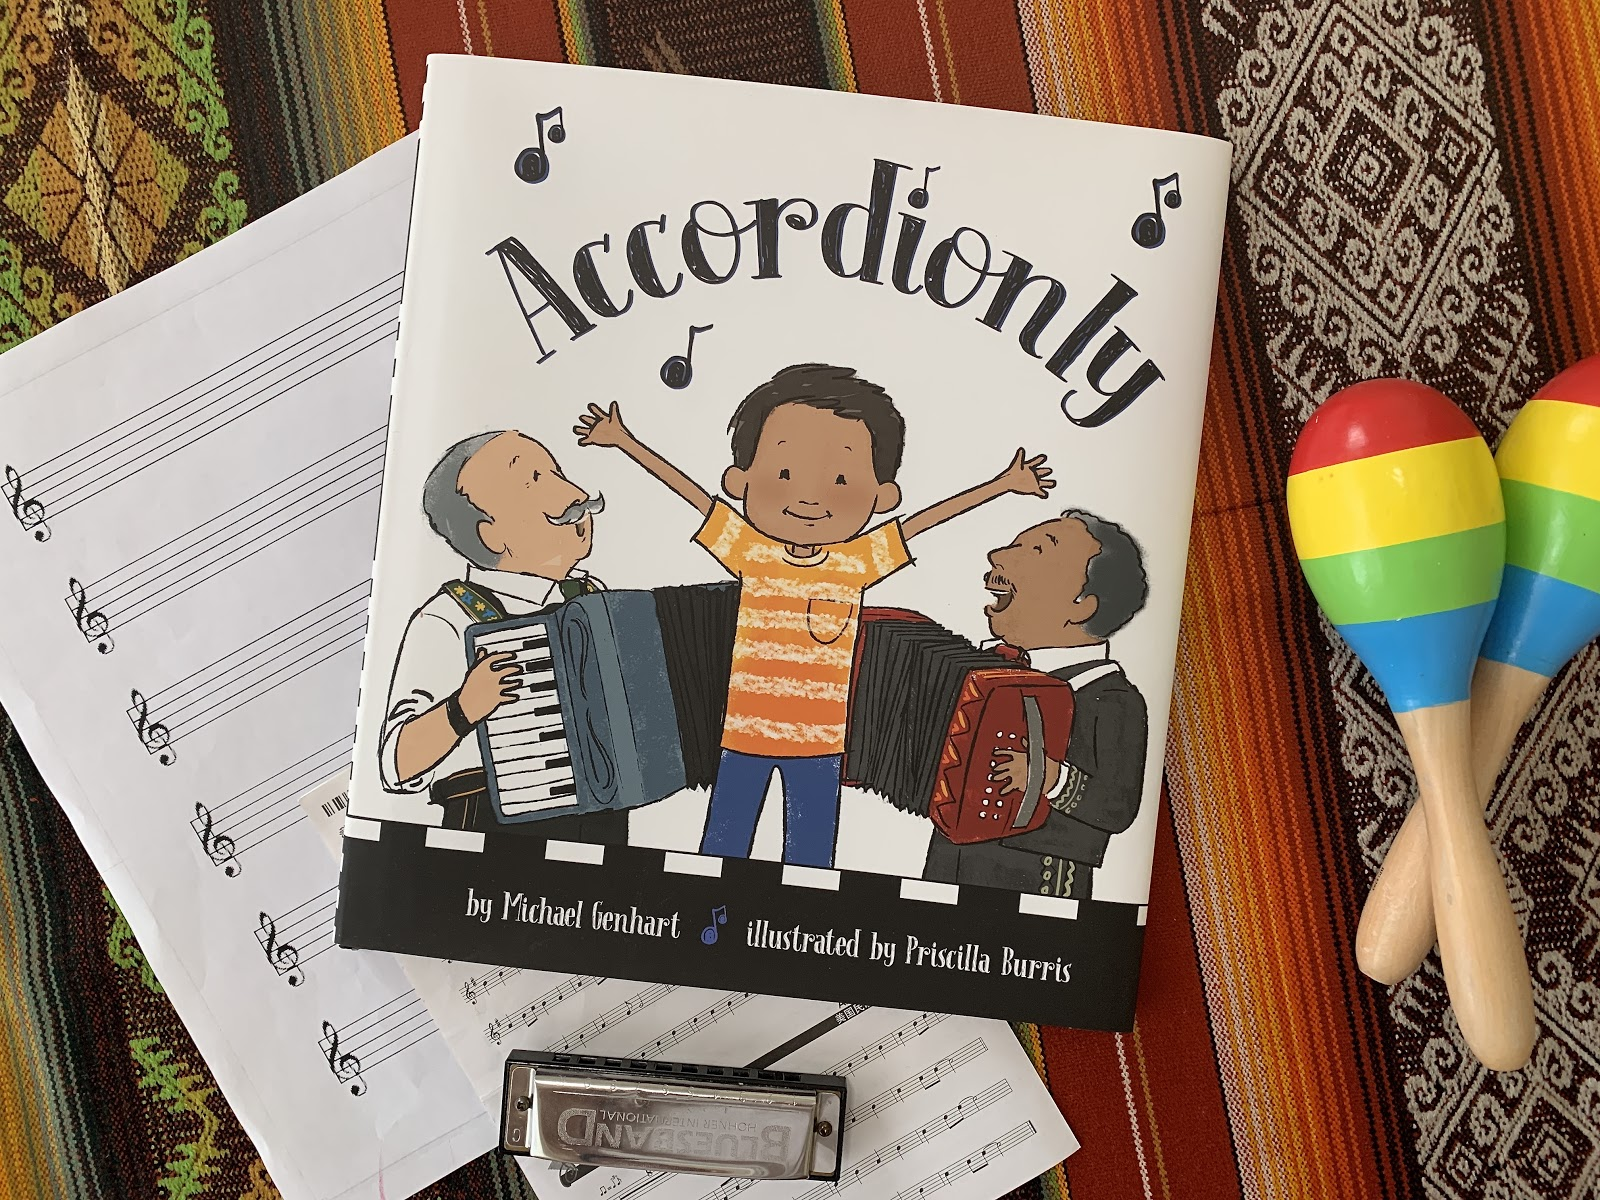 BOOK REVIEW: 'Accordionly' by Michael Genhart & Priscilla Burris